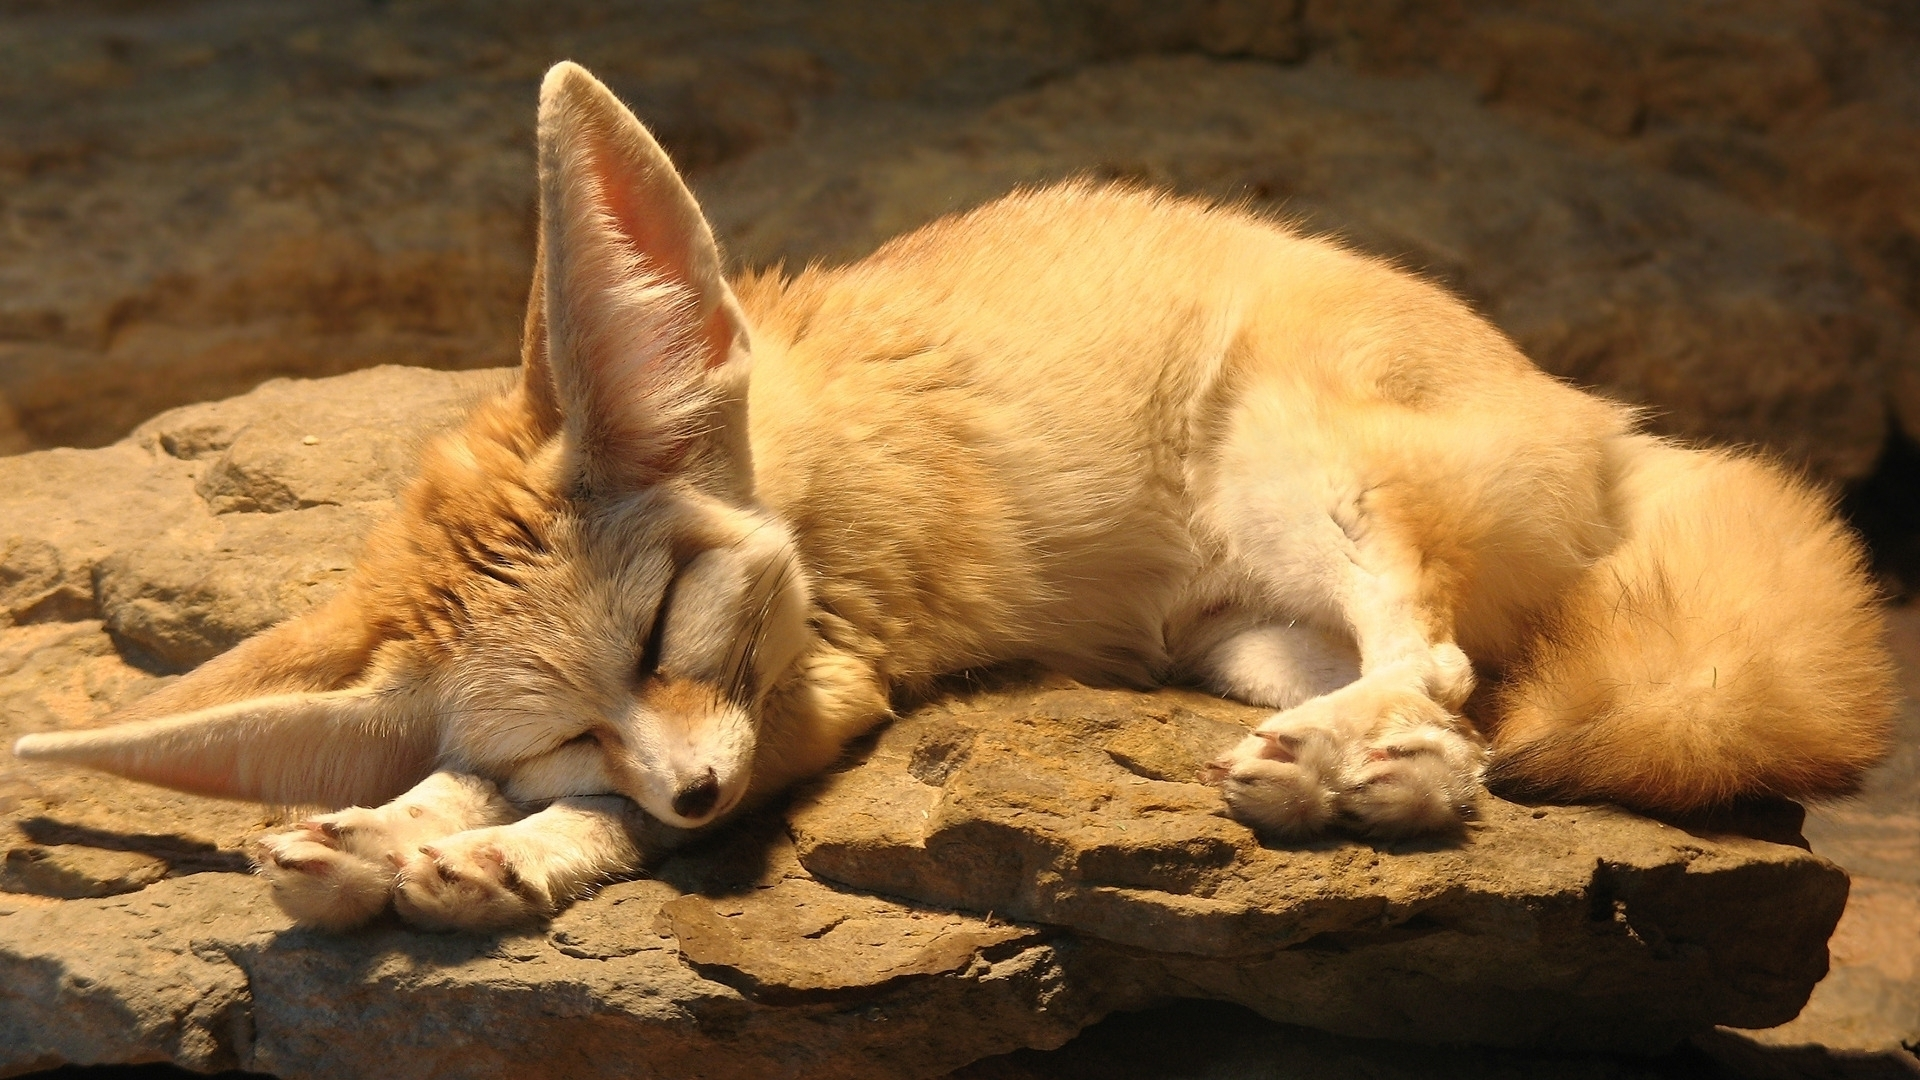 39872 download wallpaper Animals, Fox screensavers and pictures for free